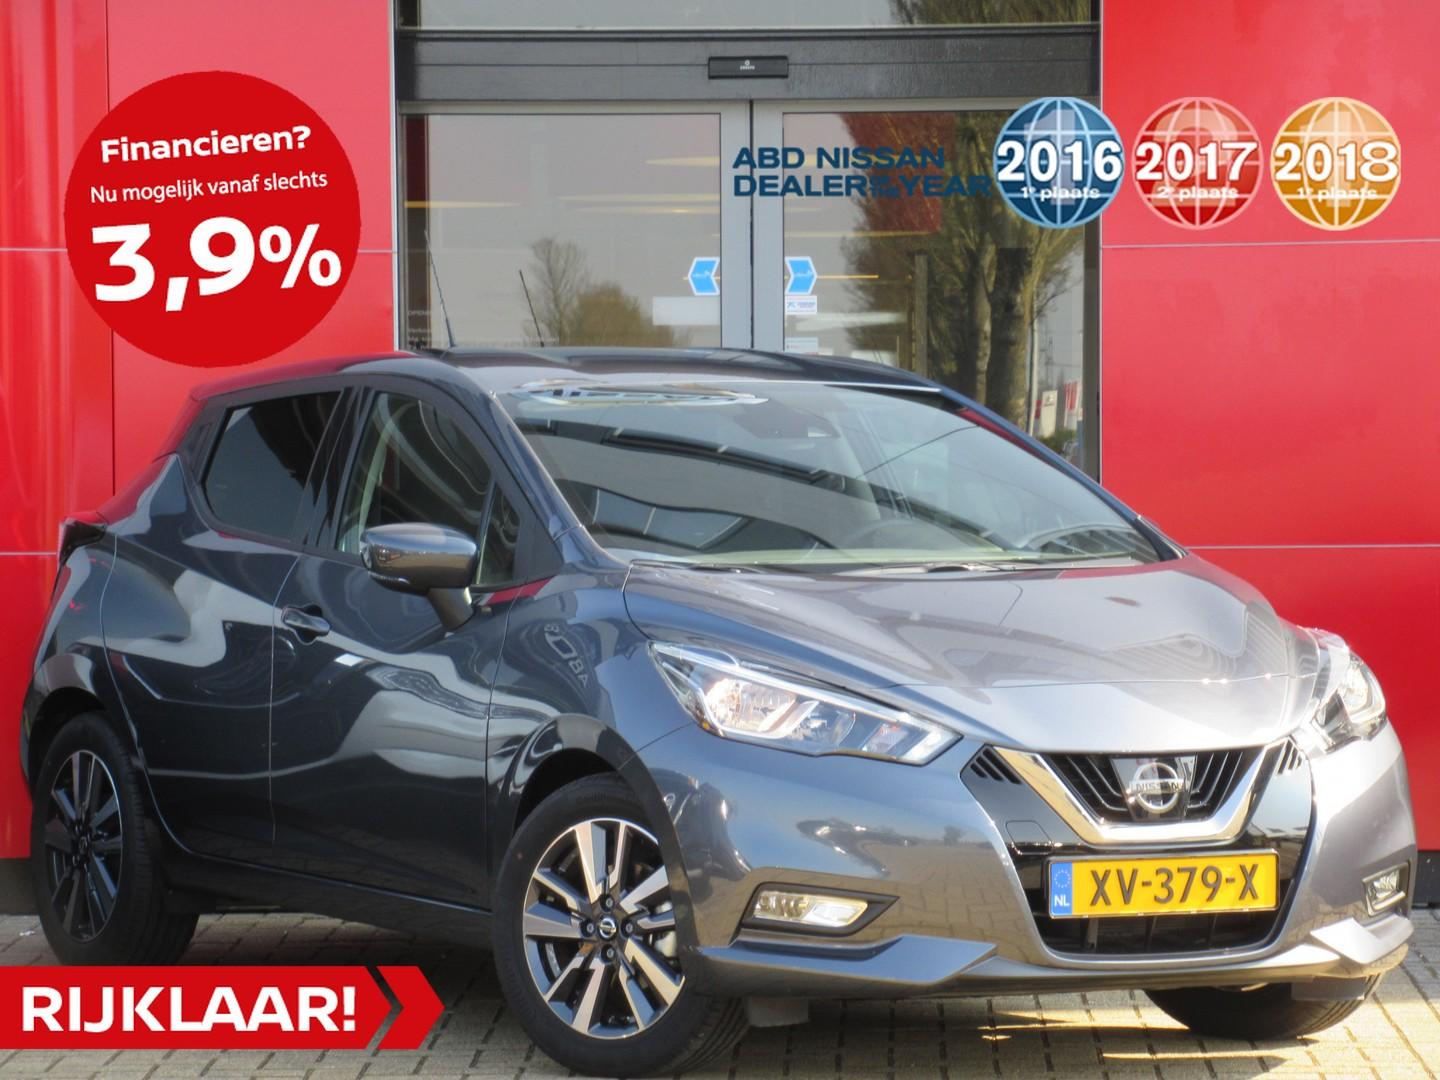 Nissan Micra Ig-t 90pk n-connecta n-way + cold pack normaal rijklaar € 21.627,- nu rijklaar € 17.945,- // private lease vanaf €279,- per maan